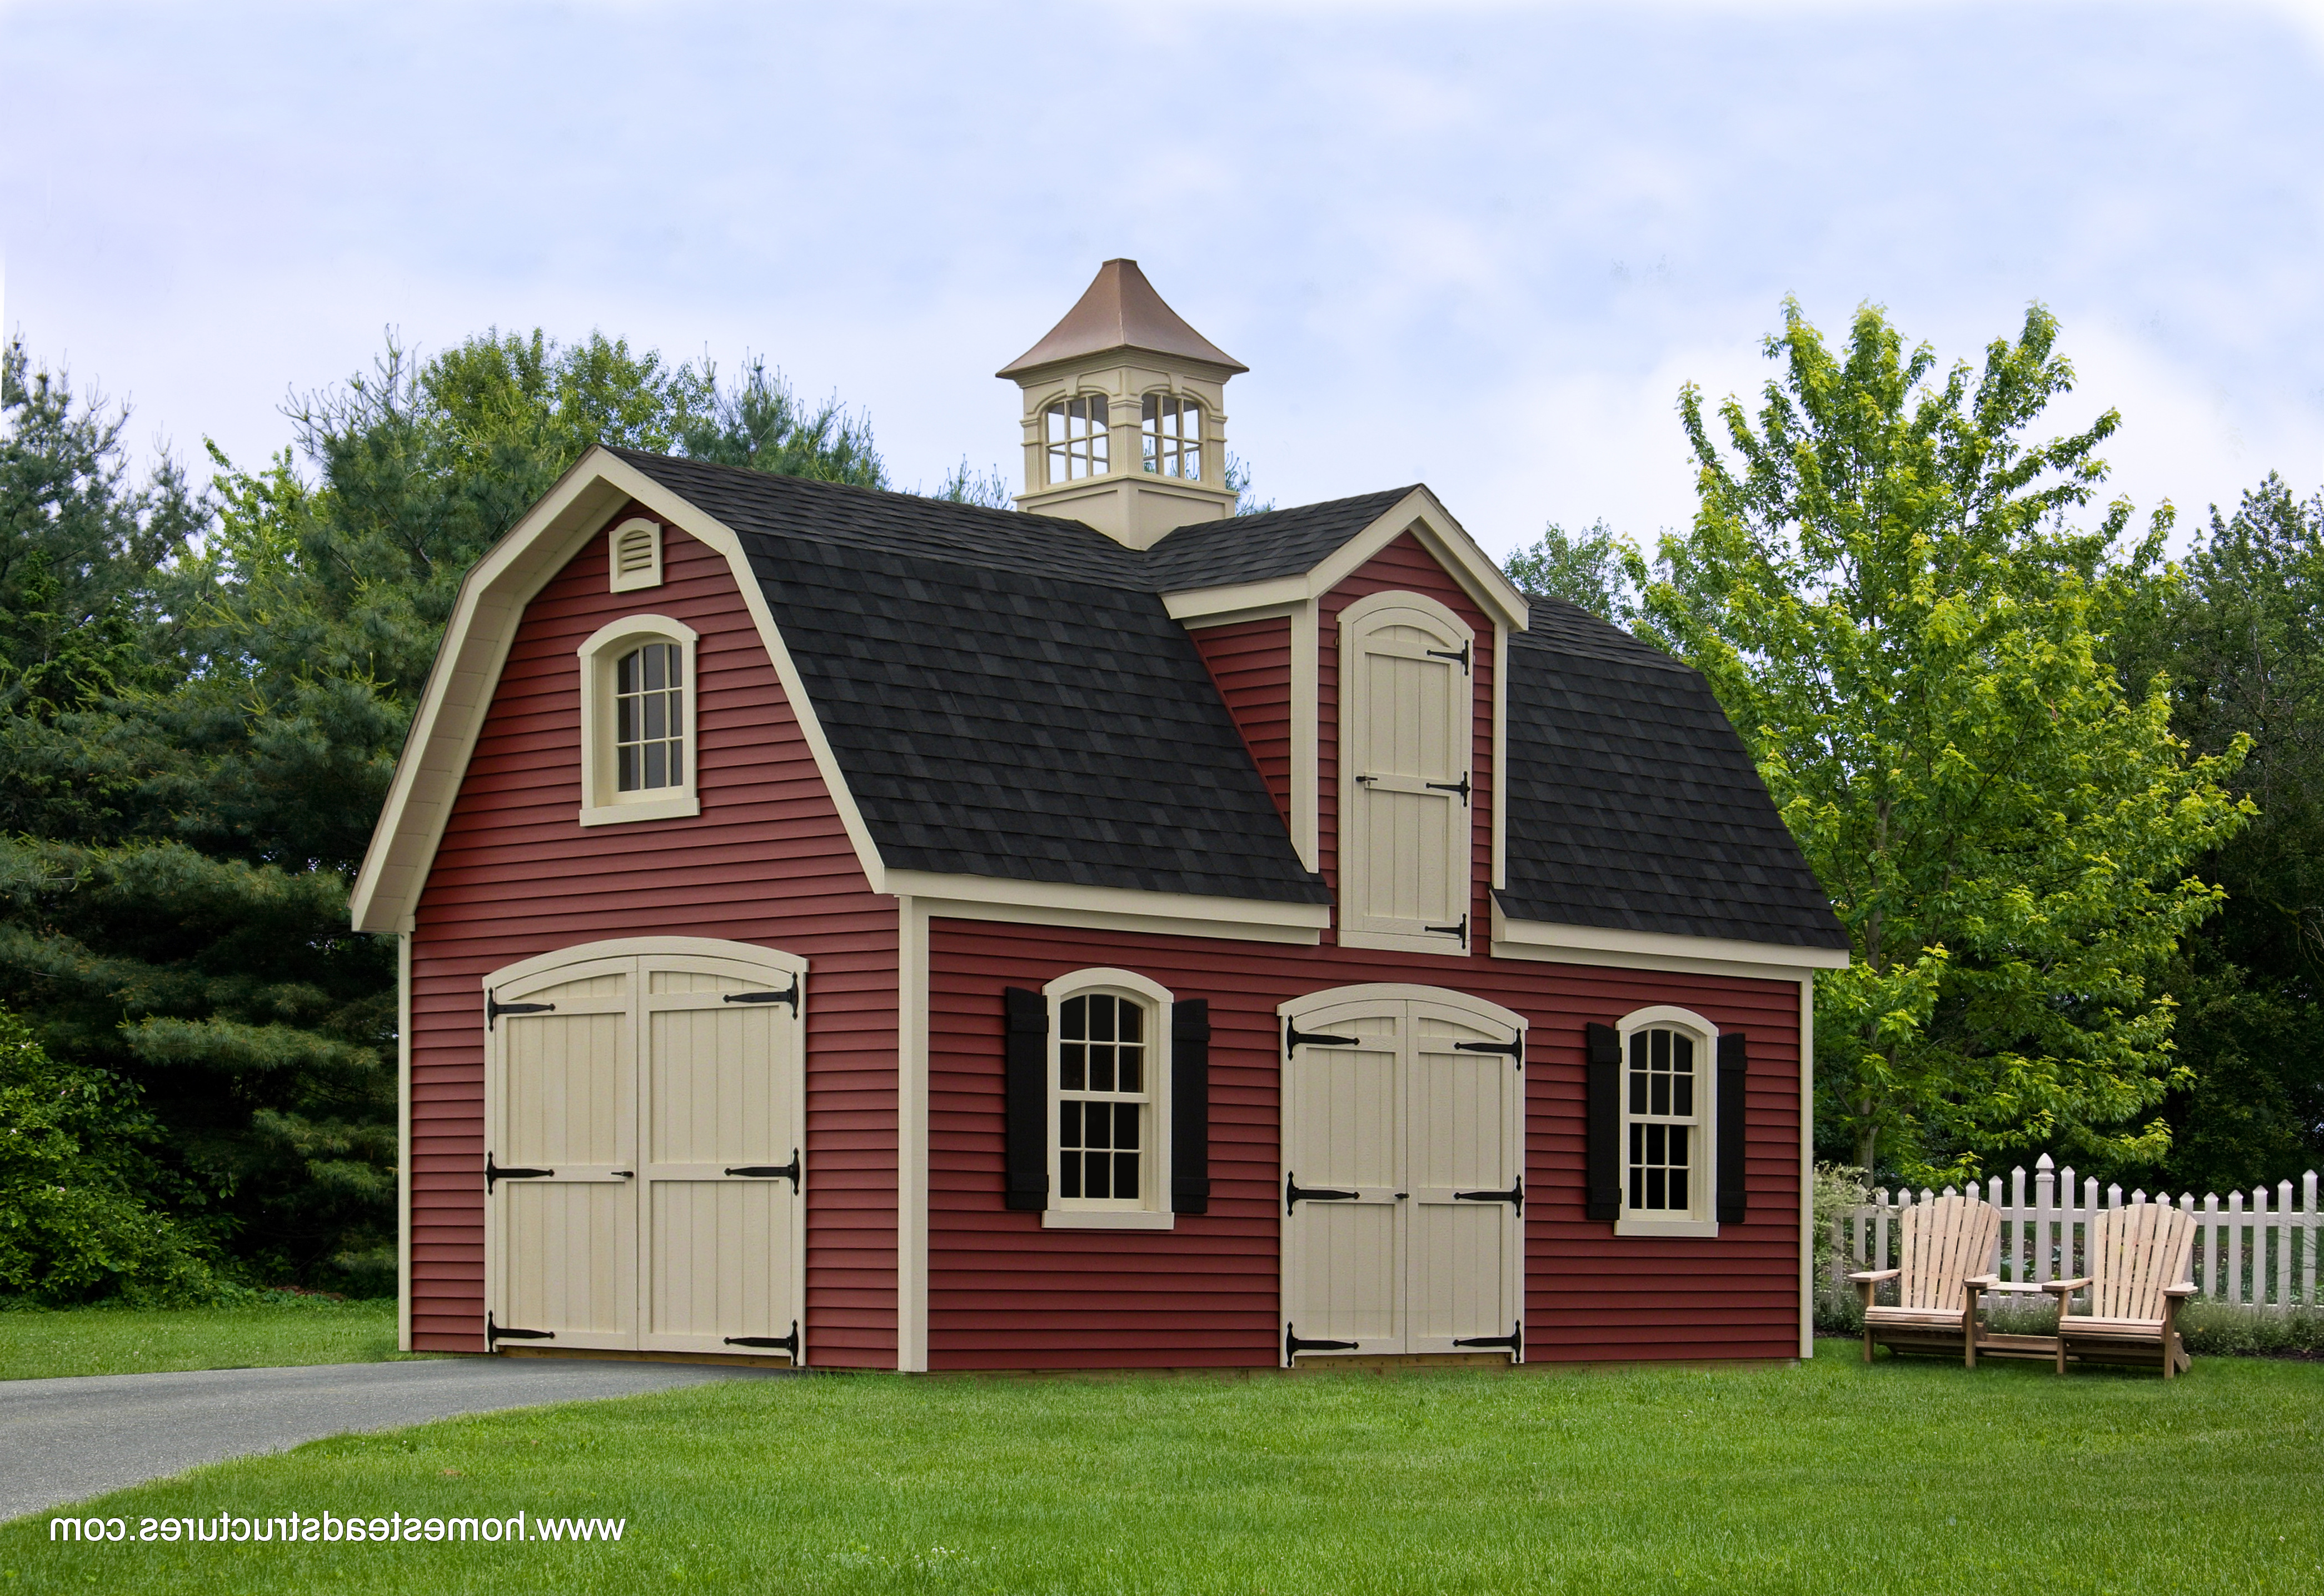 Custom Storage Sheds for Sale in PA, Garden Sheds, Amish ...